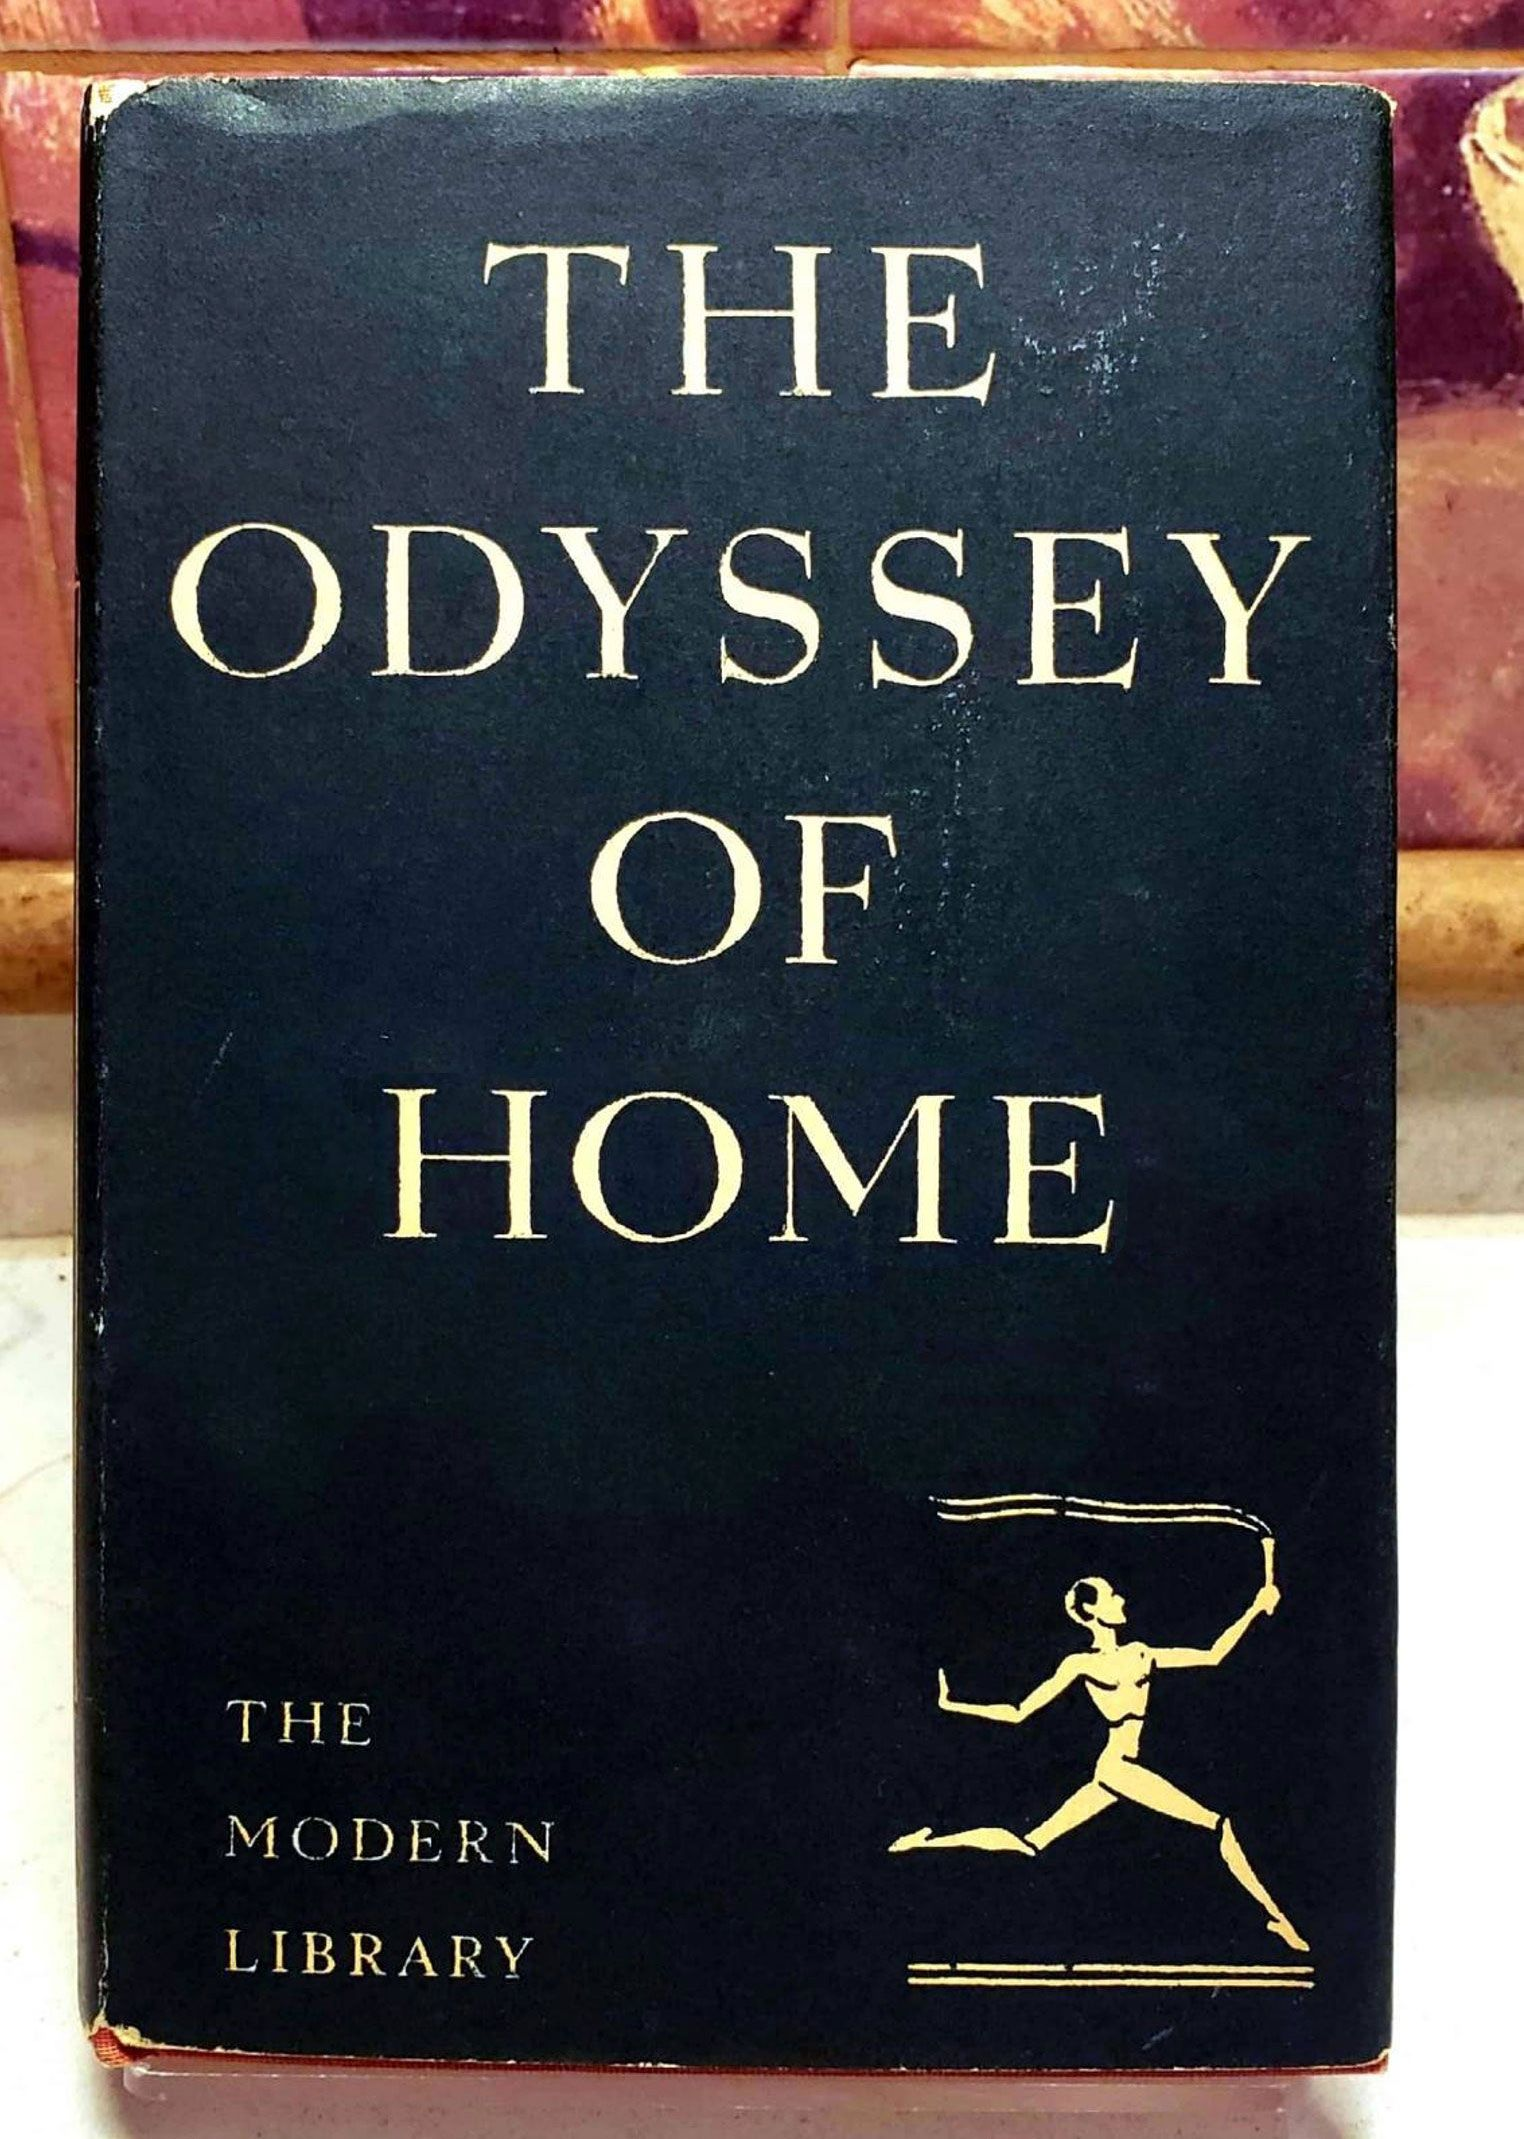 The Odyssey of Home (The Odyssey of Homer)